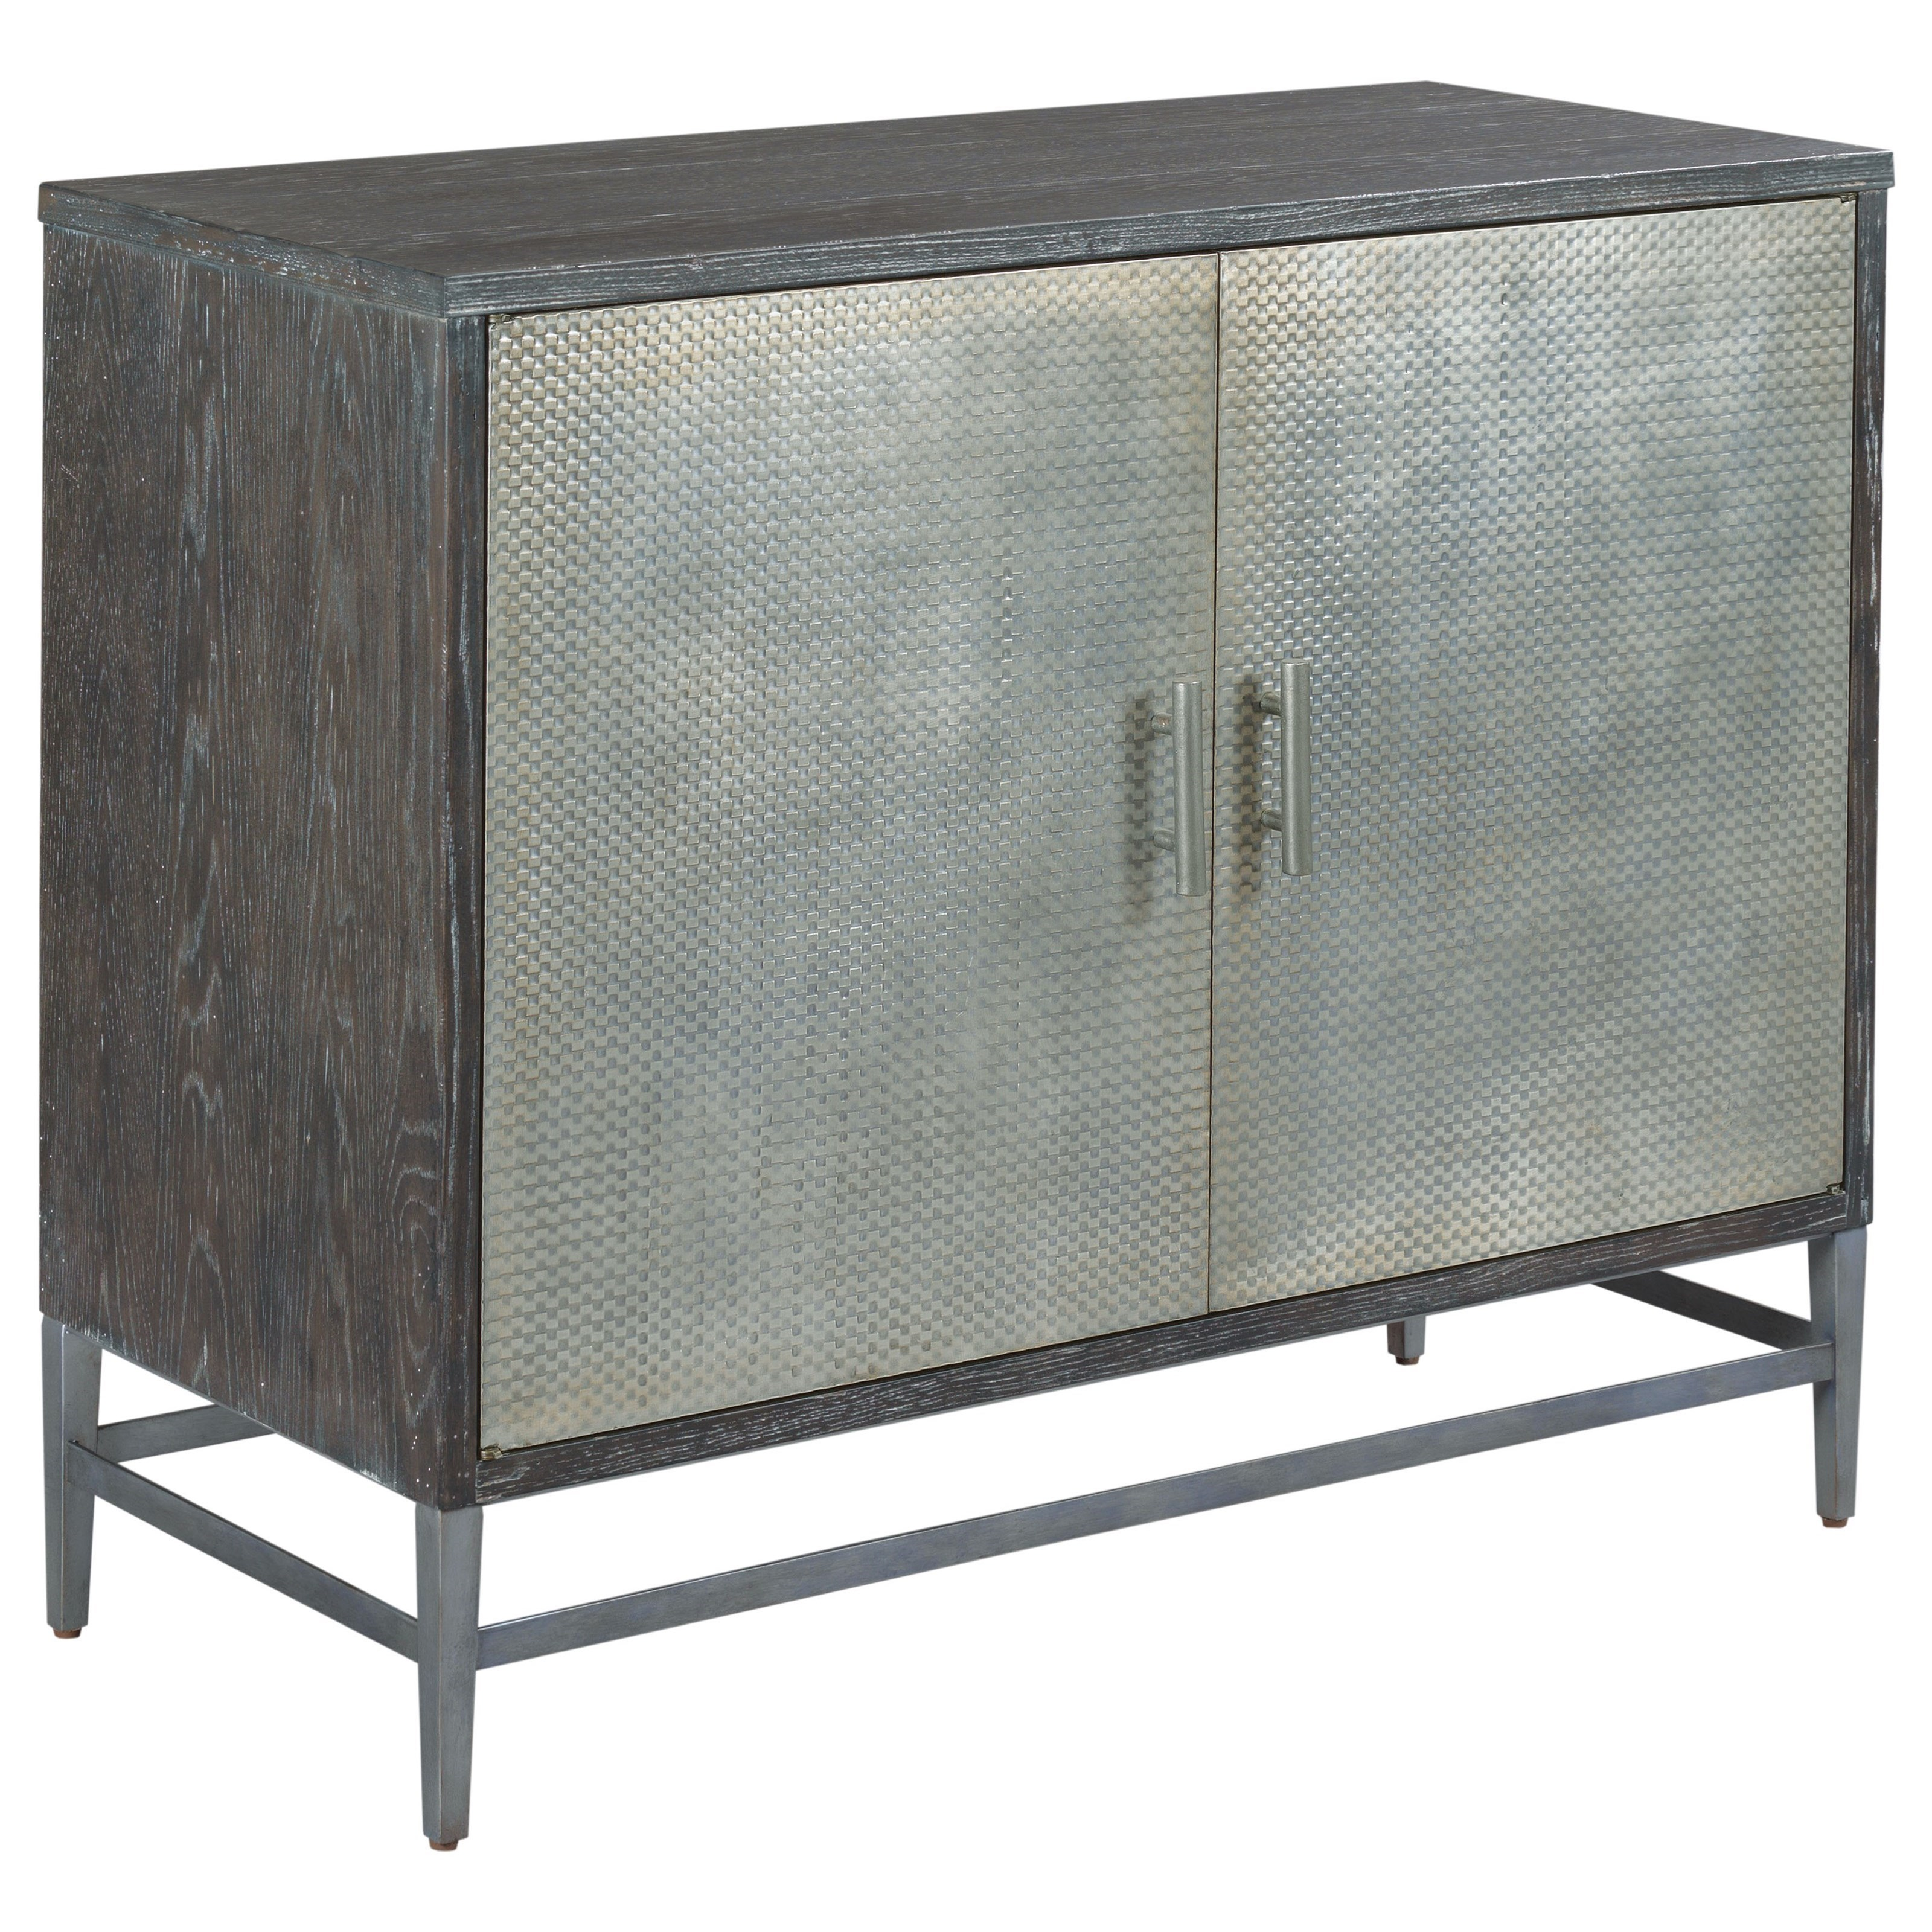 Hidden Treasures Wine Cabinet by Hammary at Red Knot